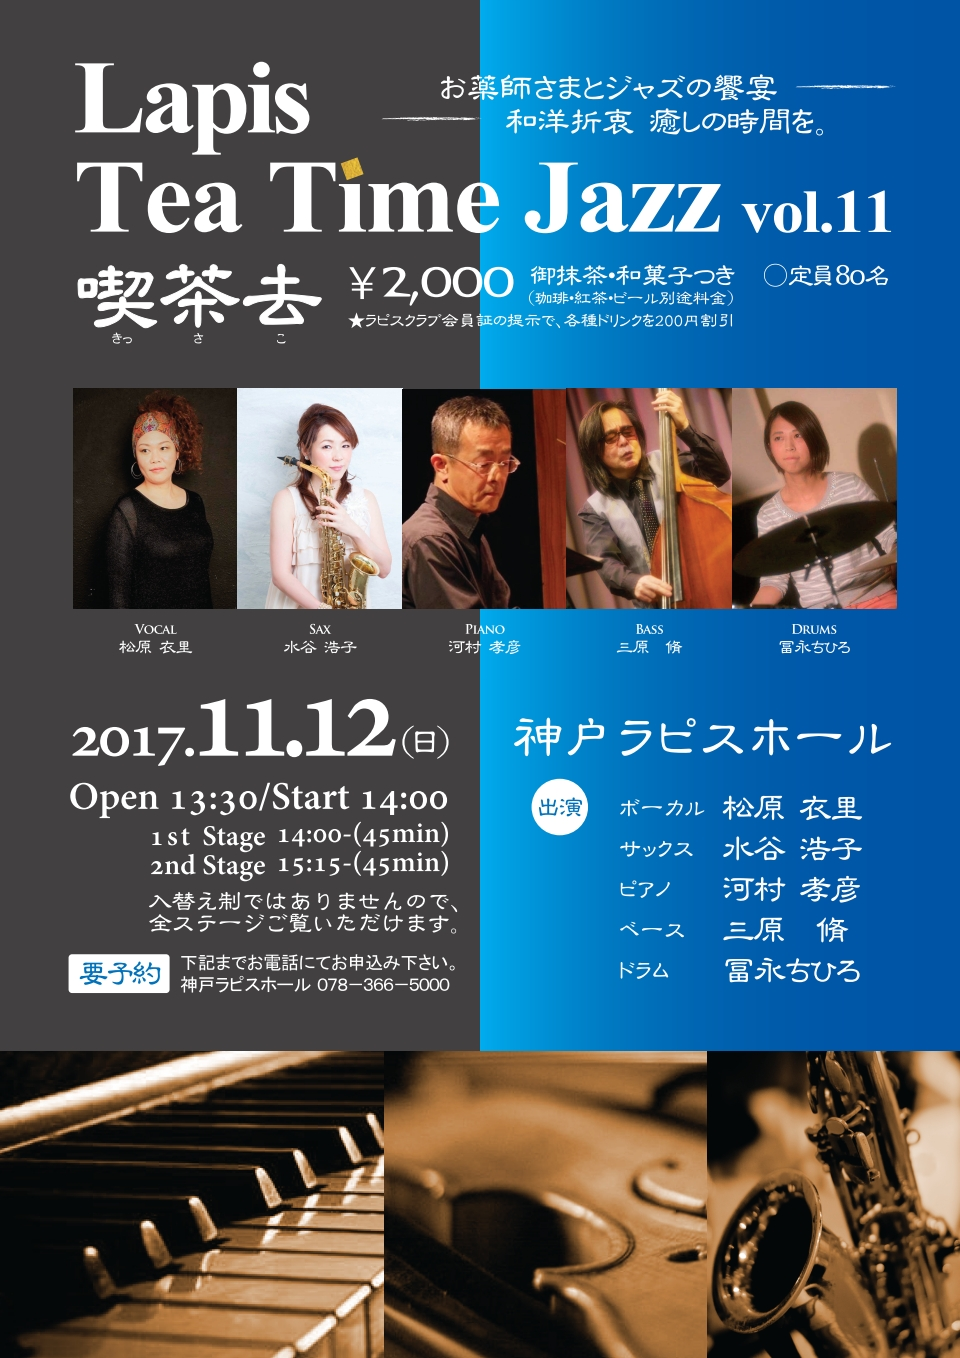 Lapis Tea Time Jazz vol.11 喫茶去